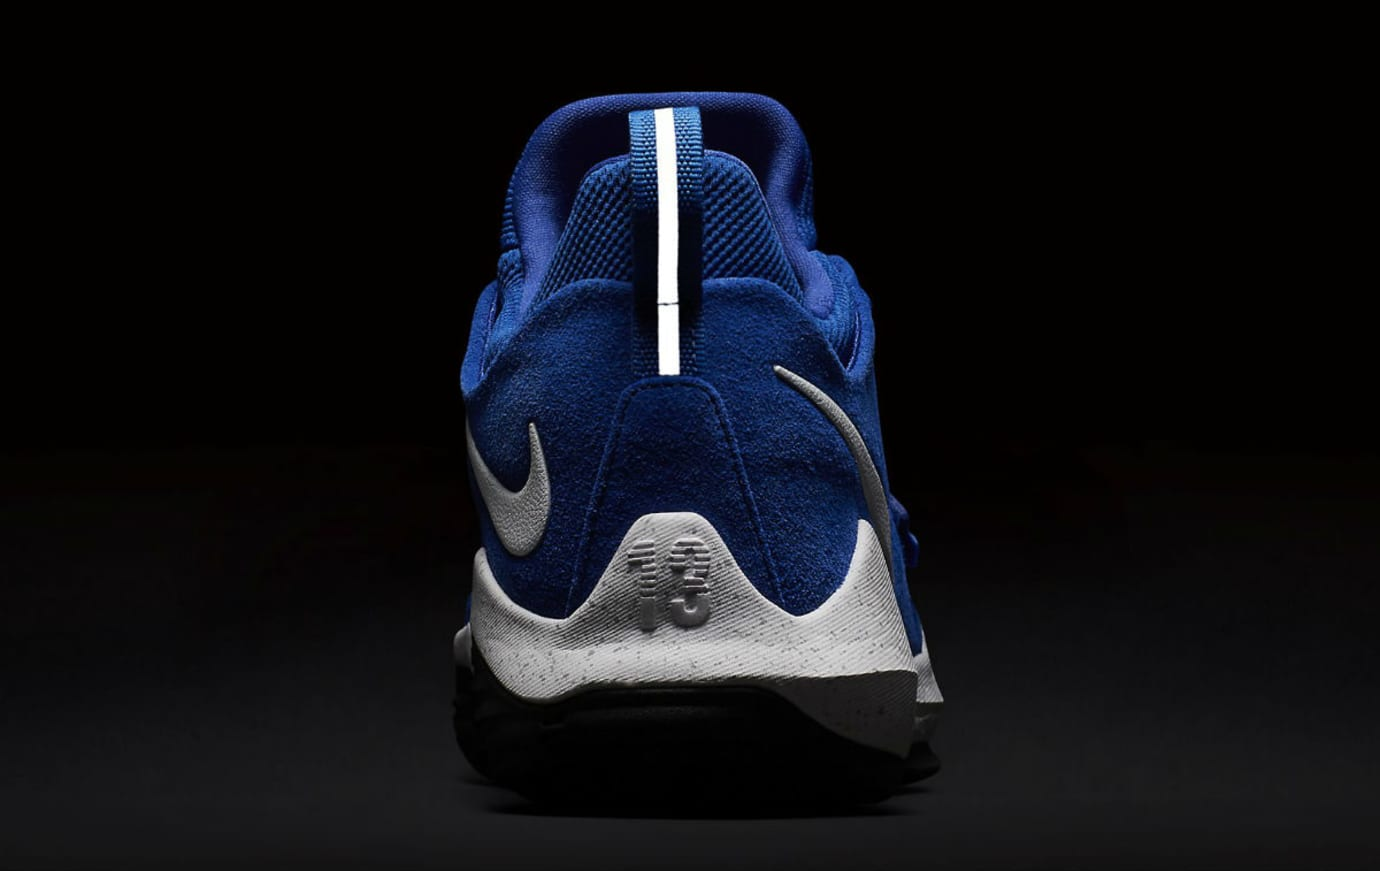 Nike PG1 Game Royal Release Date 3M 878628-400